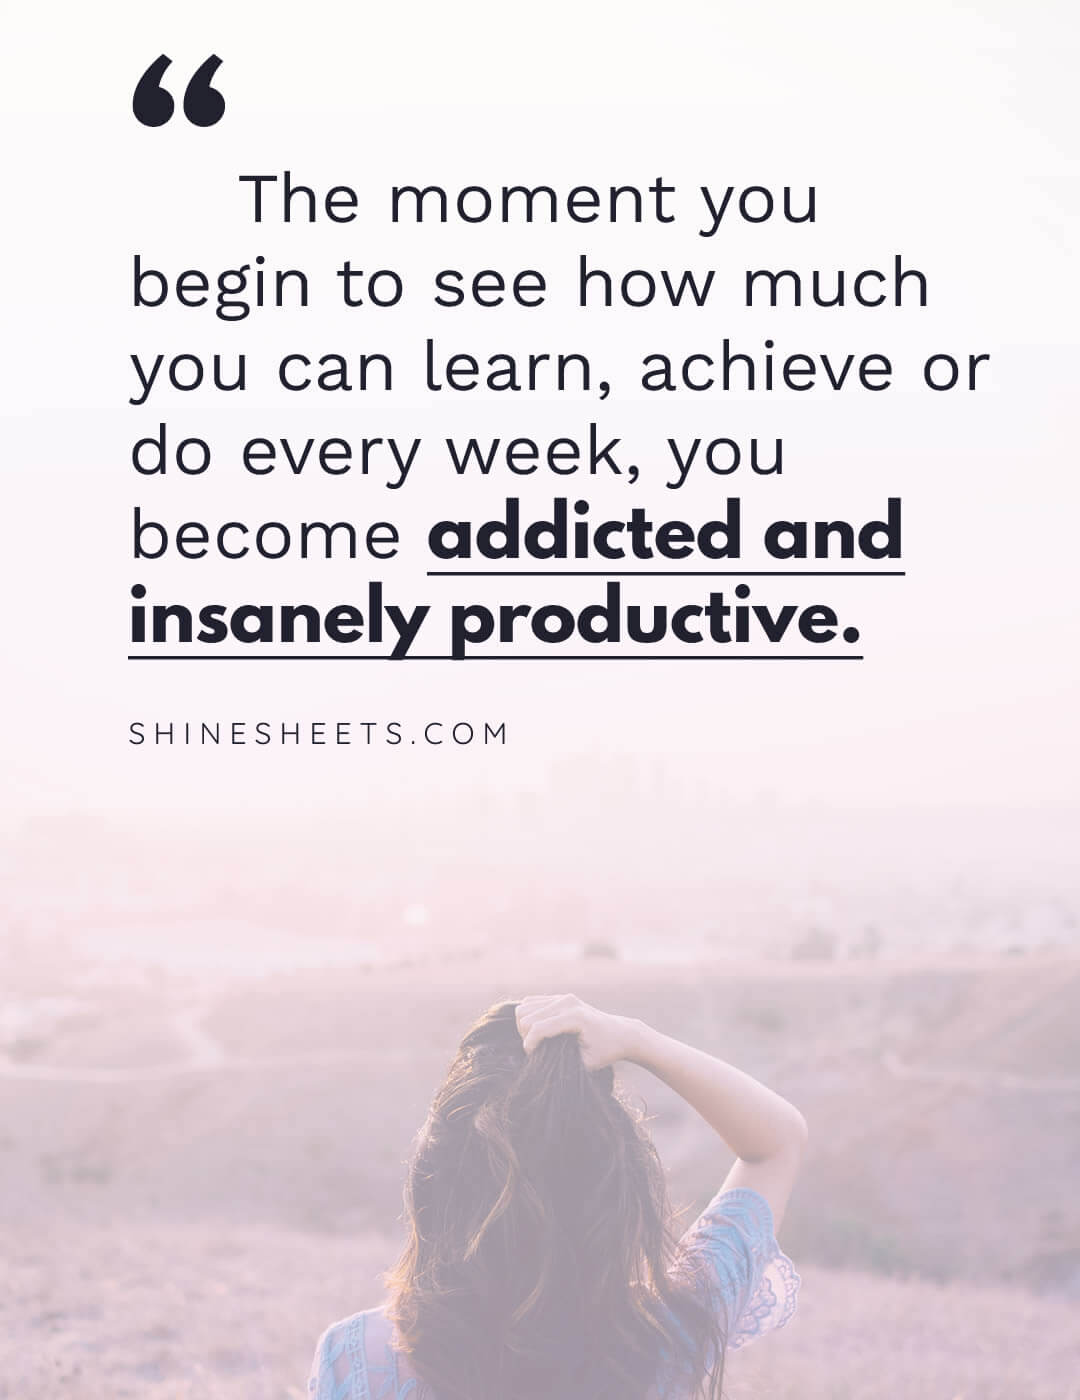 inspiring quote about mindset change